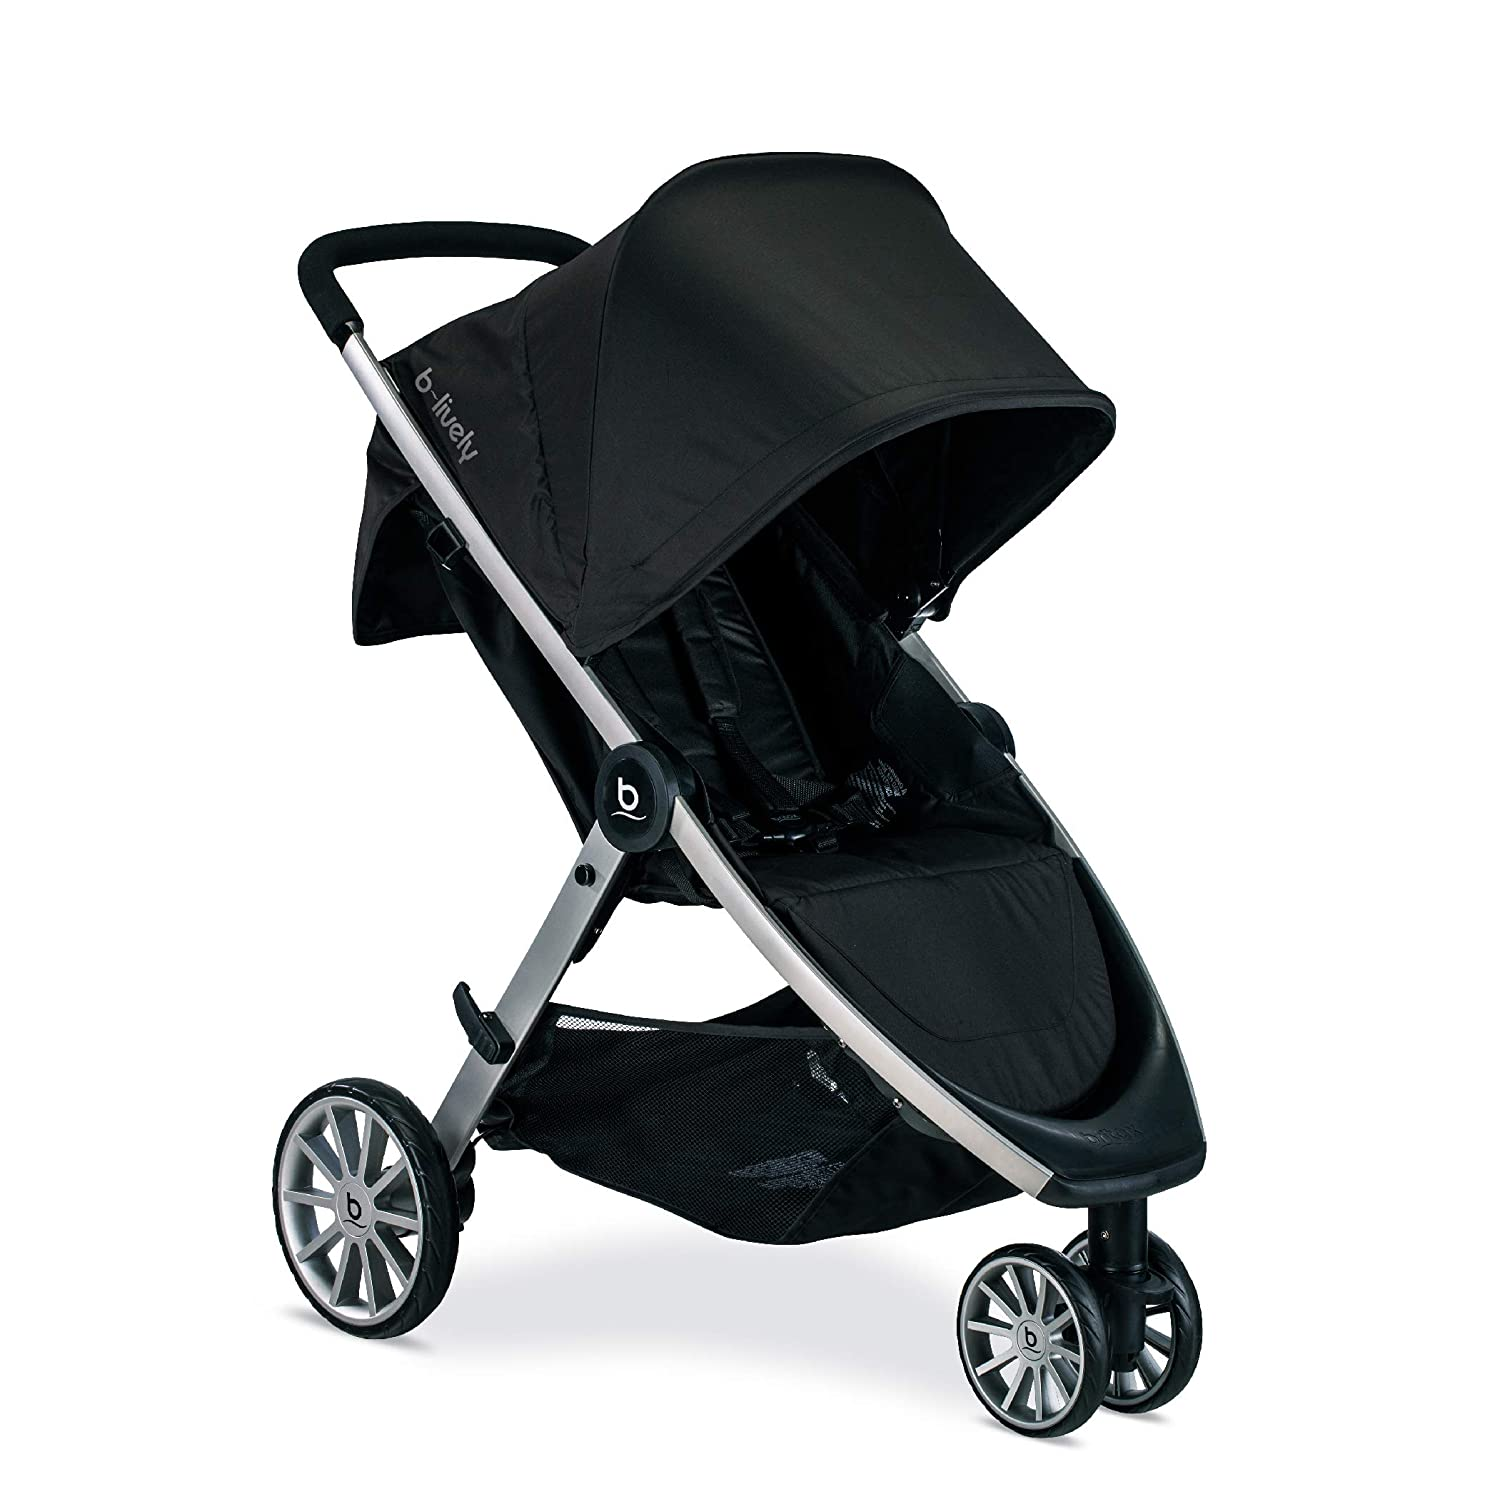 BRITAX B Lively Lightweight Stroller- Most Lightweight Strollers For Toddlers